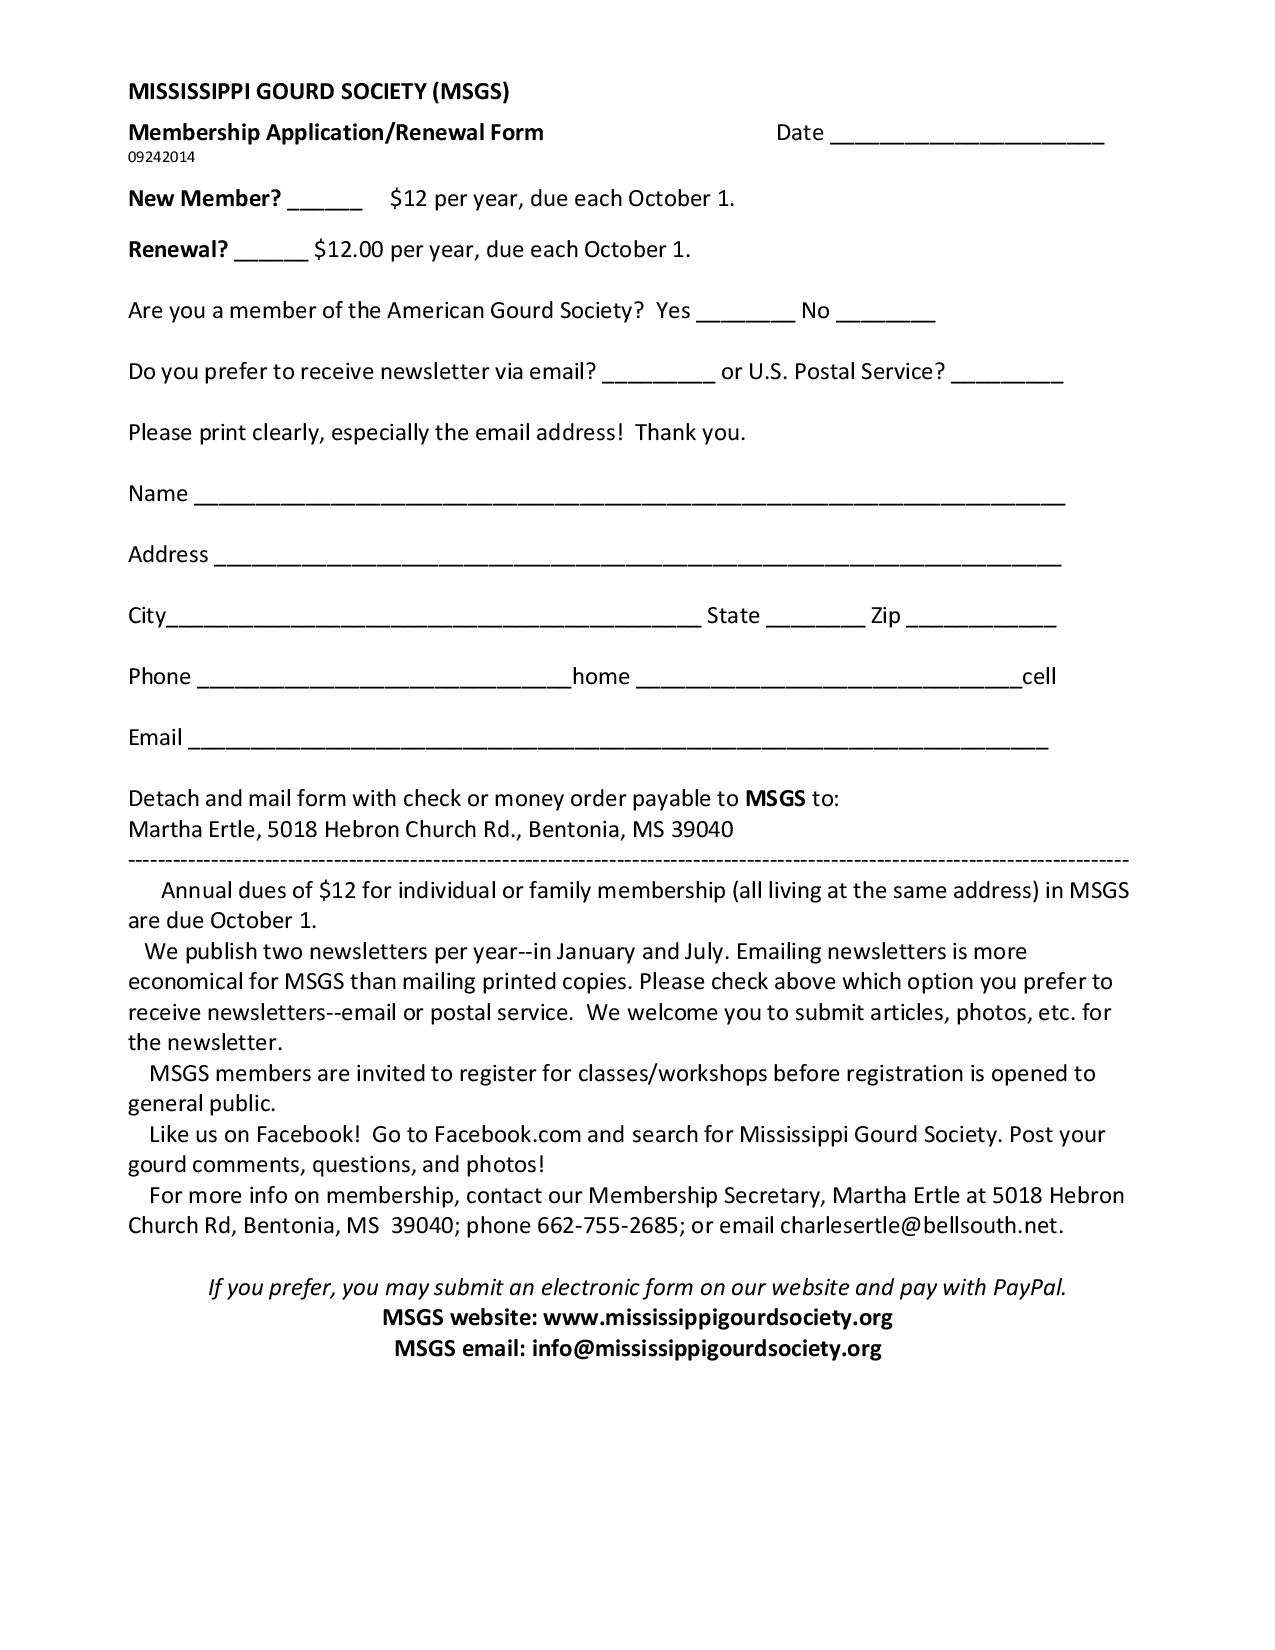 Membership form and dues payment for a printable membership form that you can mail please click the following link msgs membership form if you prefer the electronic form see below thecheapjerseys Images